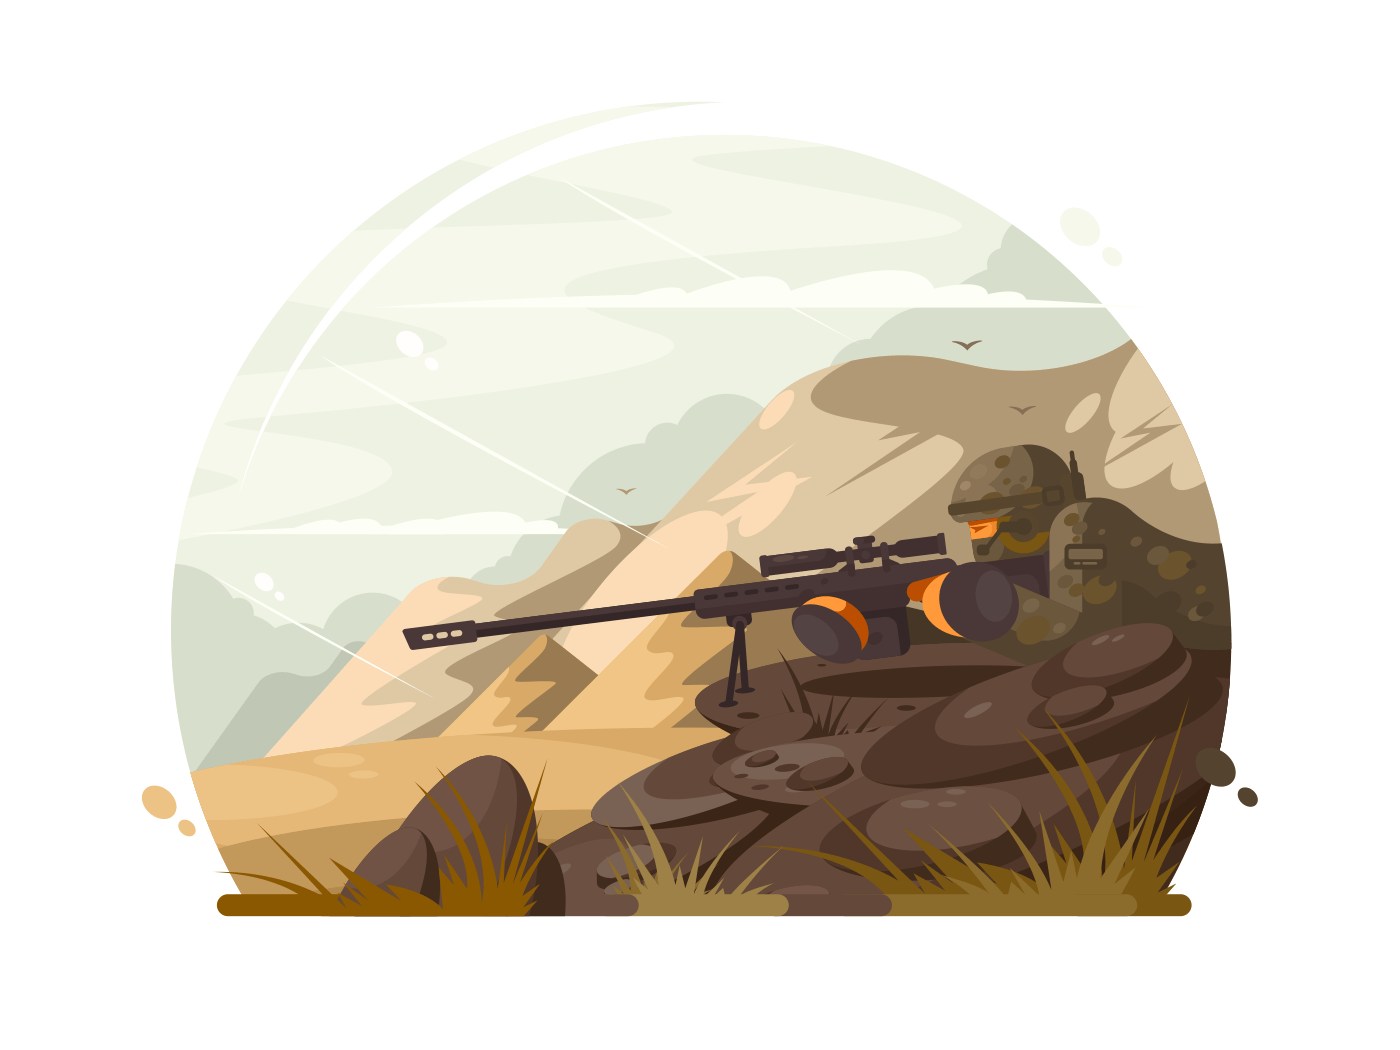 Military sniper lies in wait illustration